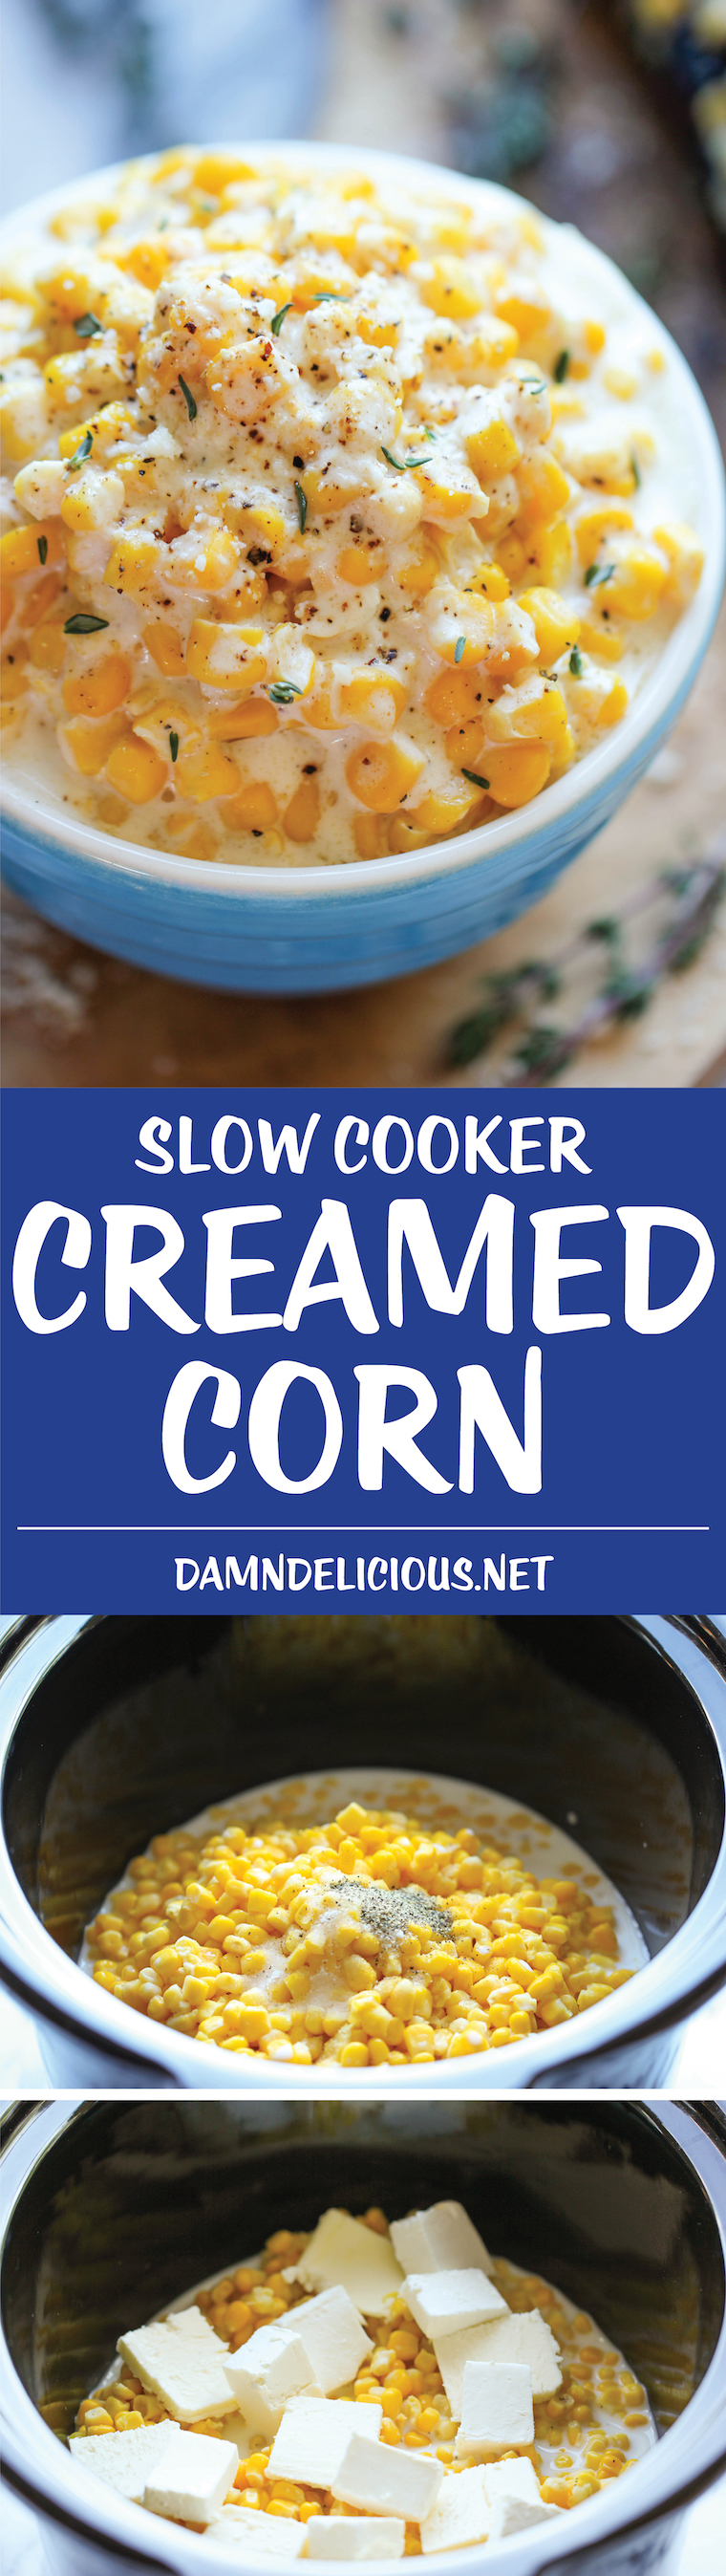 Slow Cooker Creamed Corn -Skipped the canned cream corn this year and make it from scratch right in the crockpot – it's so rich and creamy and unbelievably easy to make with just 5 ingredients!